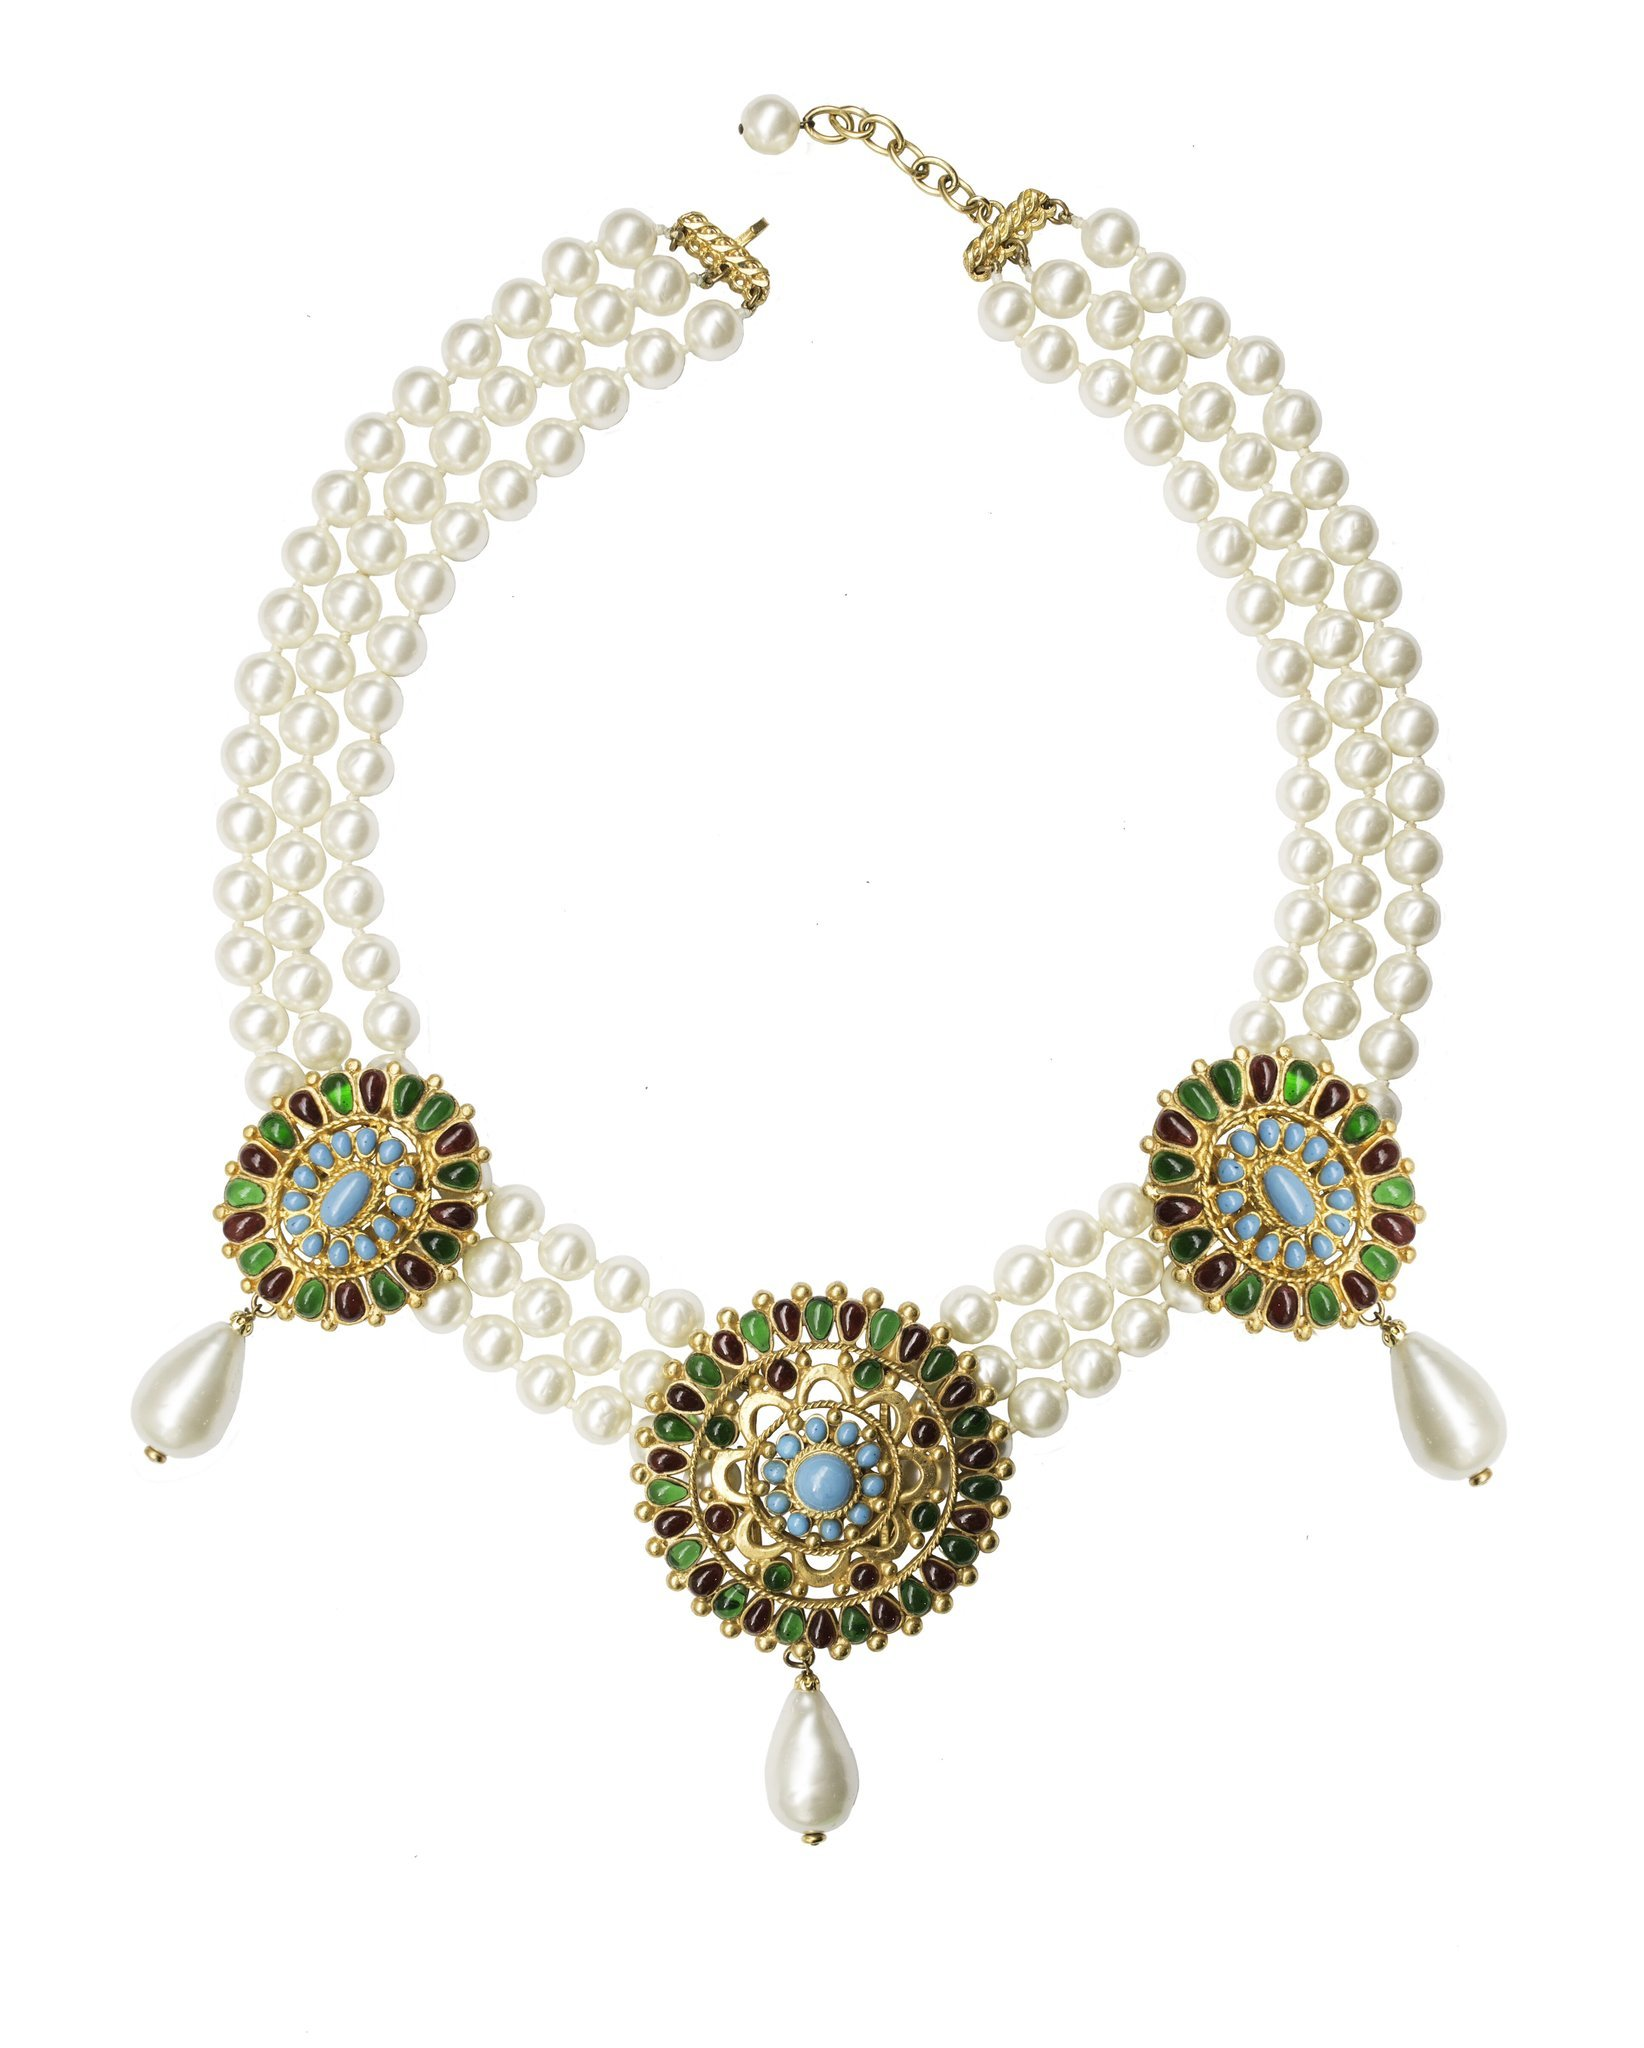 Gorgeous vintage Chanel necklace in Byzantine style with pearls and Gripoix glass